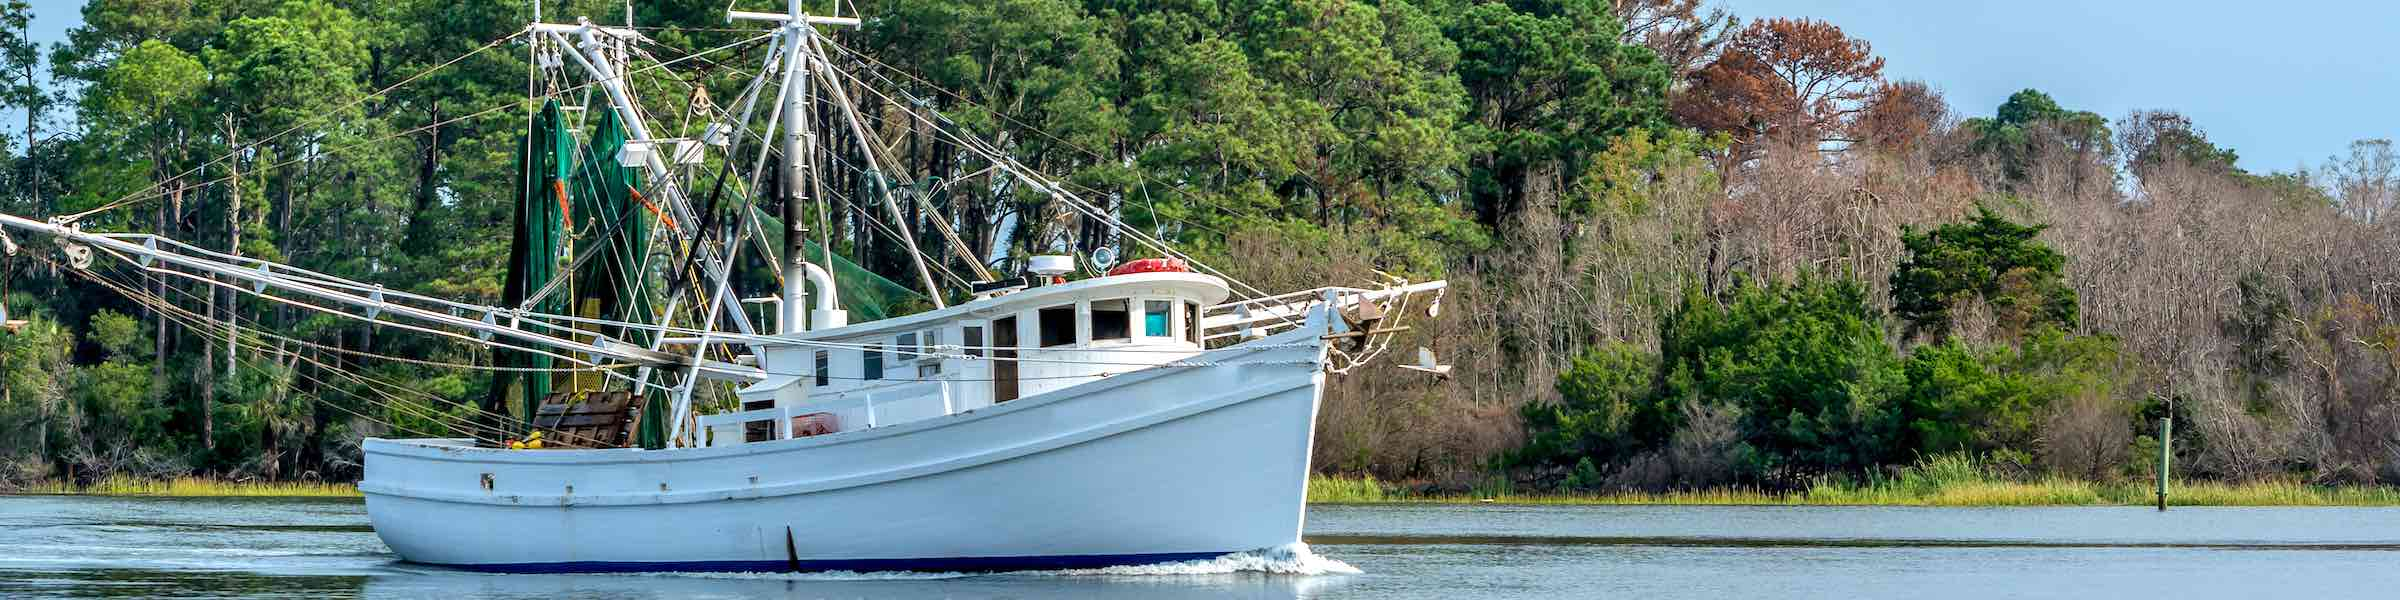 A shrimp boat sailing down a lowcountry river.